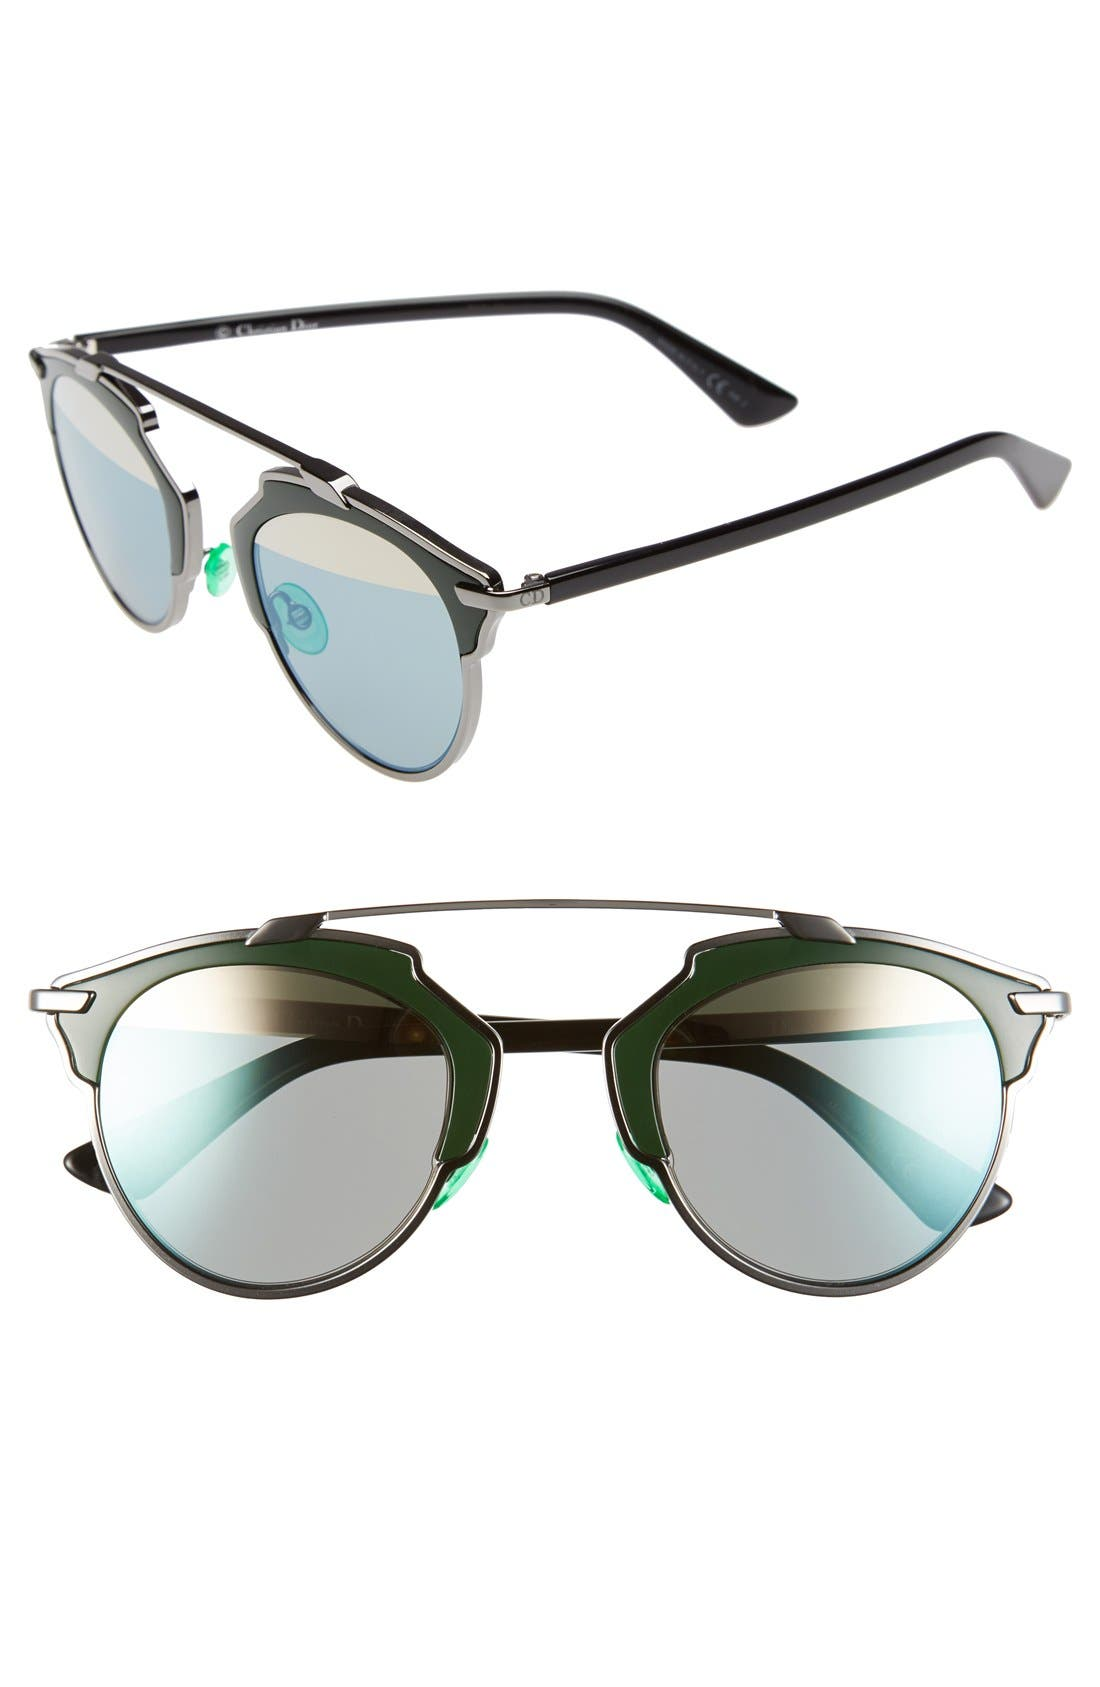 Alternate Image 1 Selected - Dior So Real 48mm Brow Bar Sunglasses